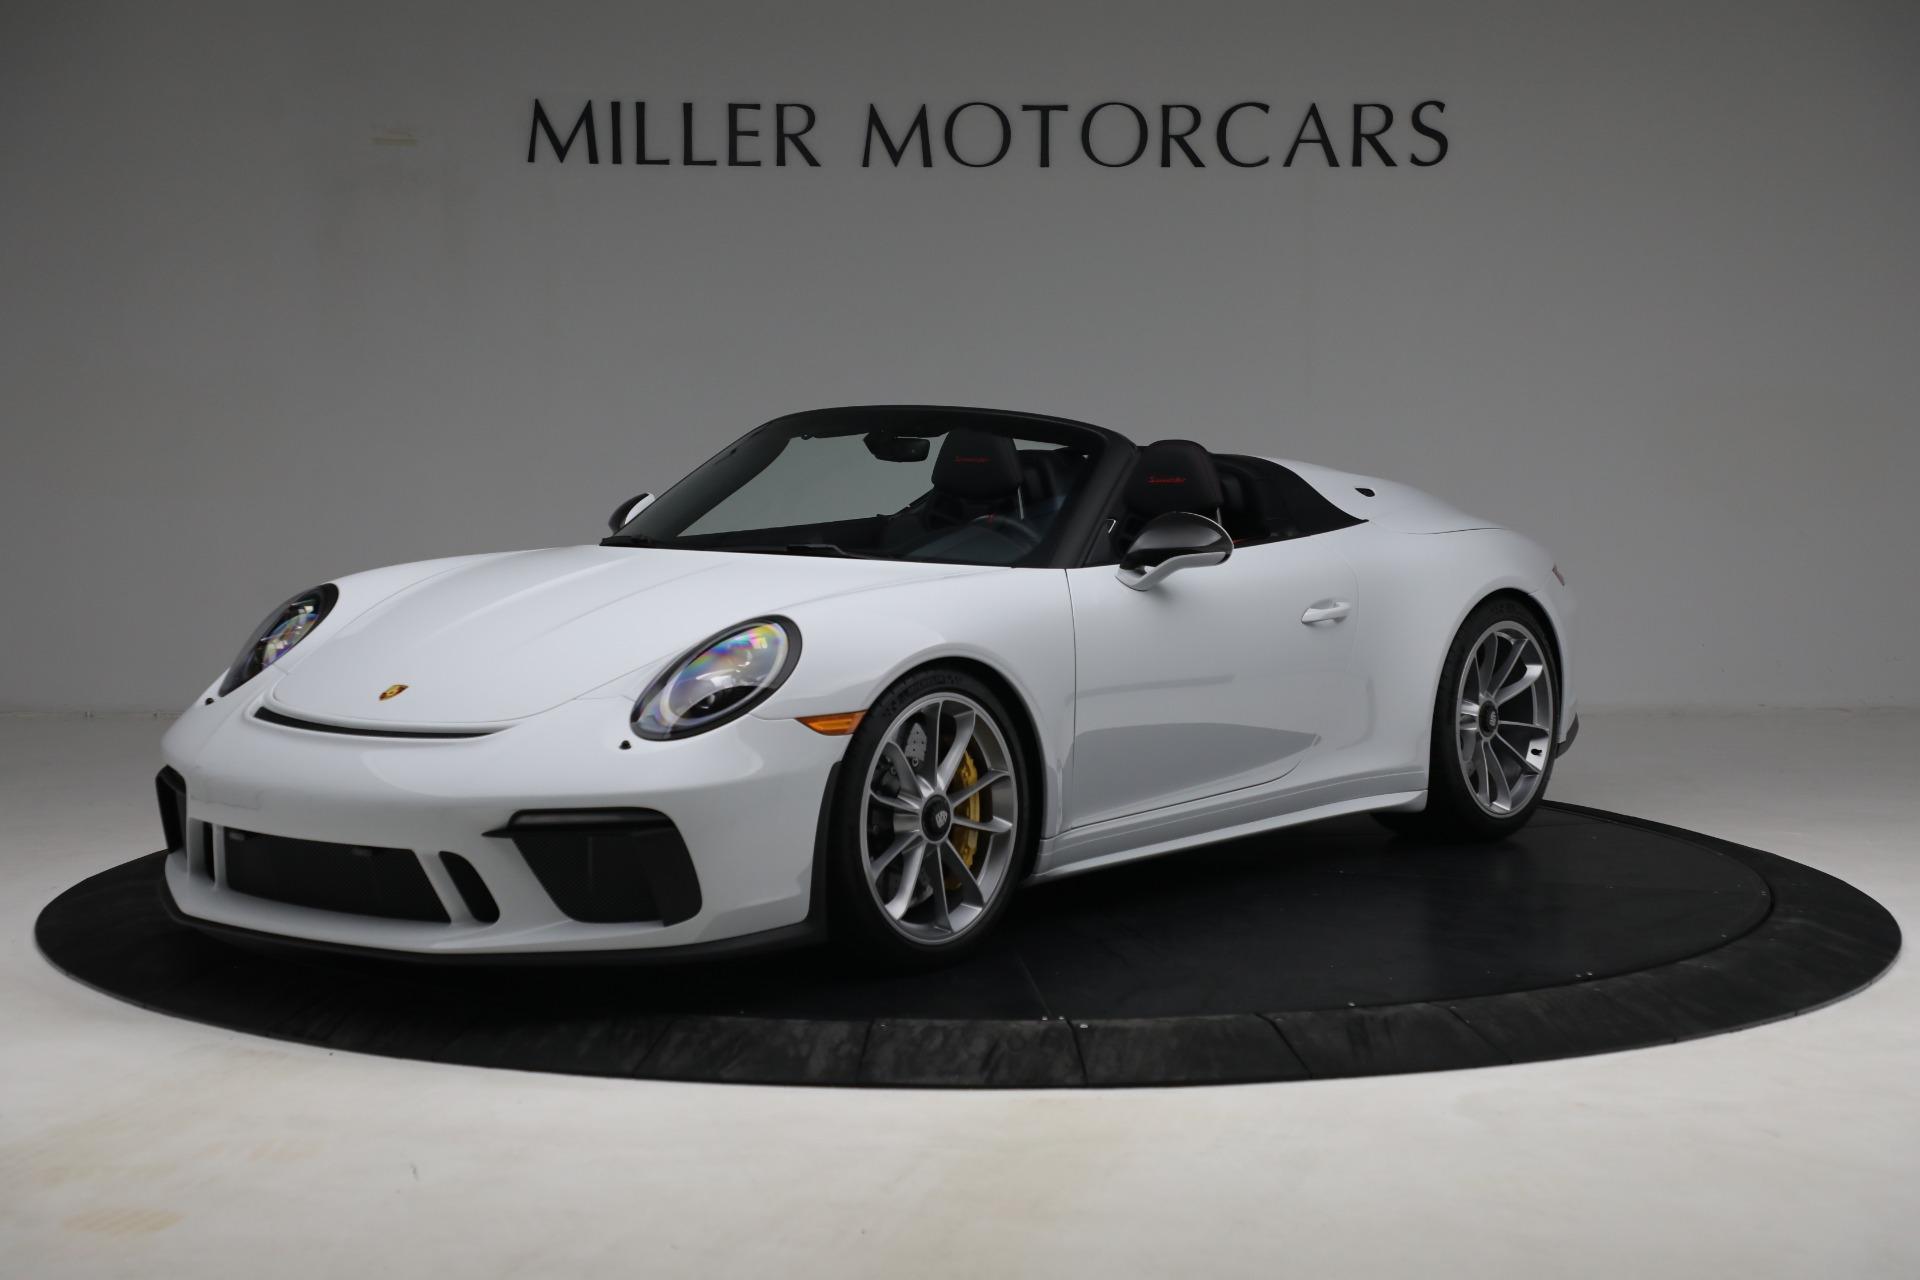 Used 2019 Porsche 911 Speedster for sale $395,900 at Rolls-Royce Motor Cars Greenwich in Greenwich CT 06830 1